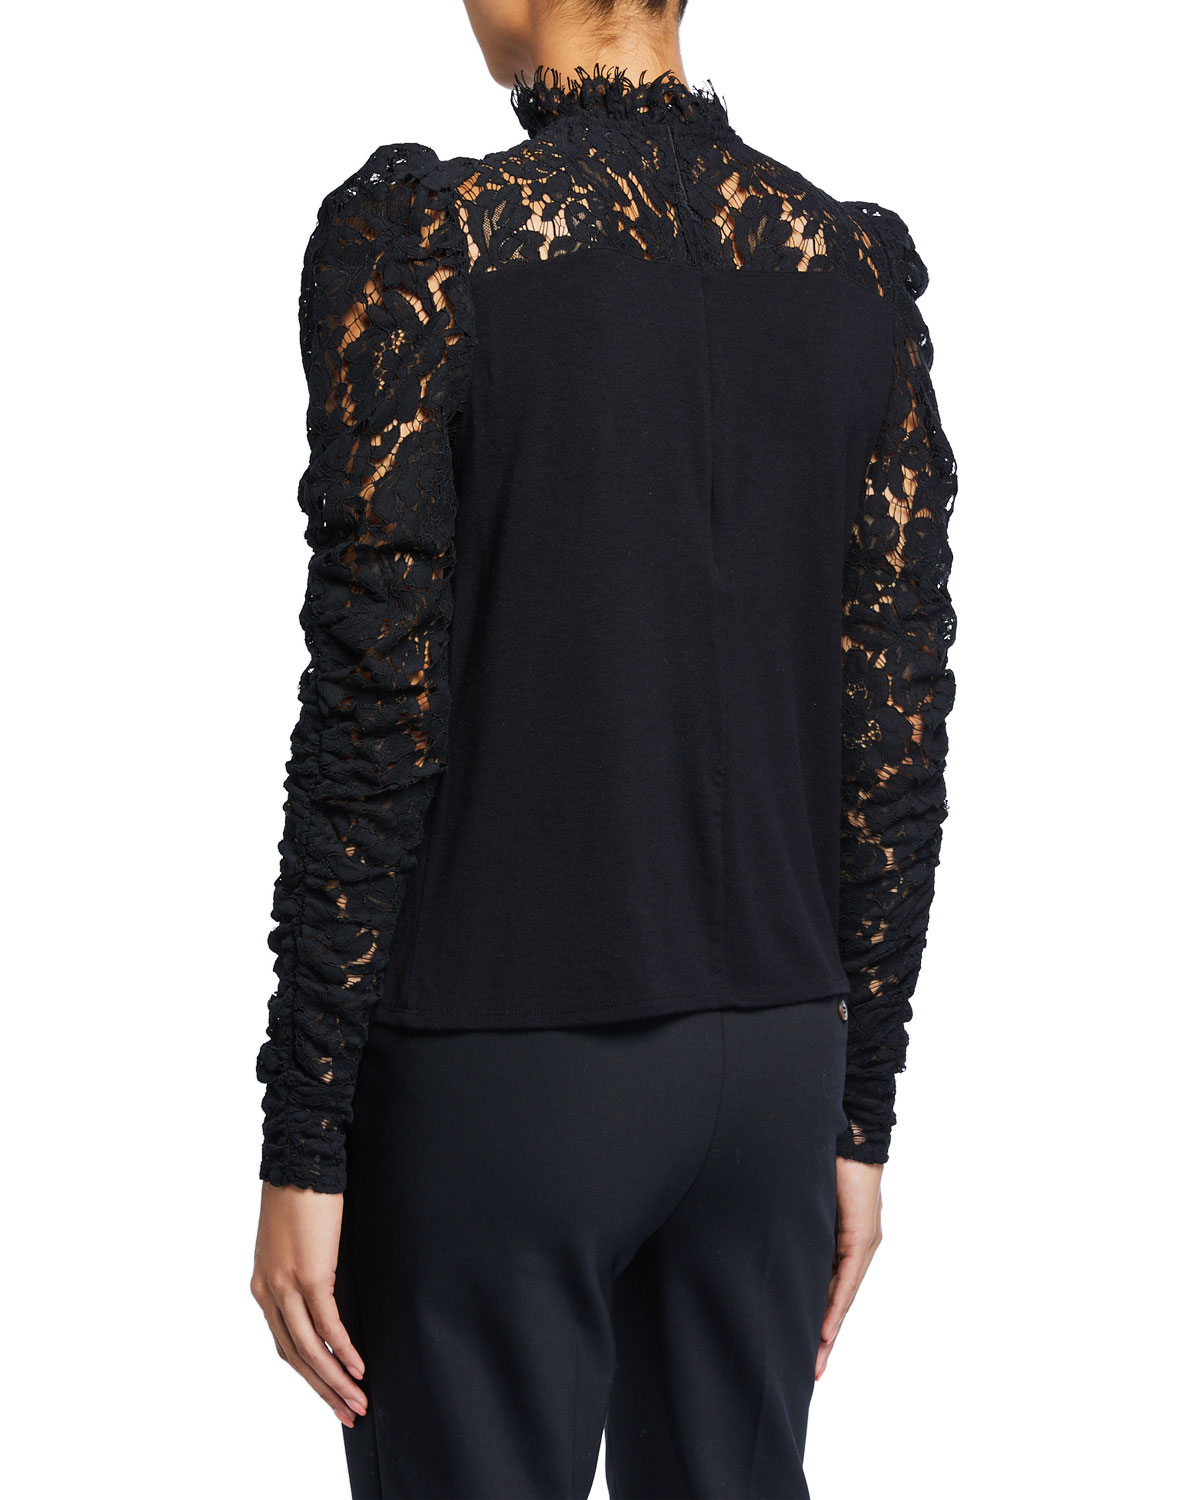 Tamra High Neck Lace Long Sleeve Top by Generation Love